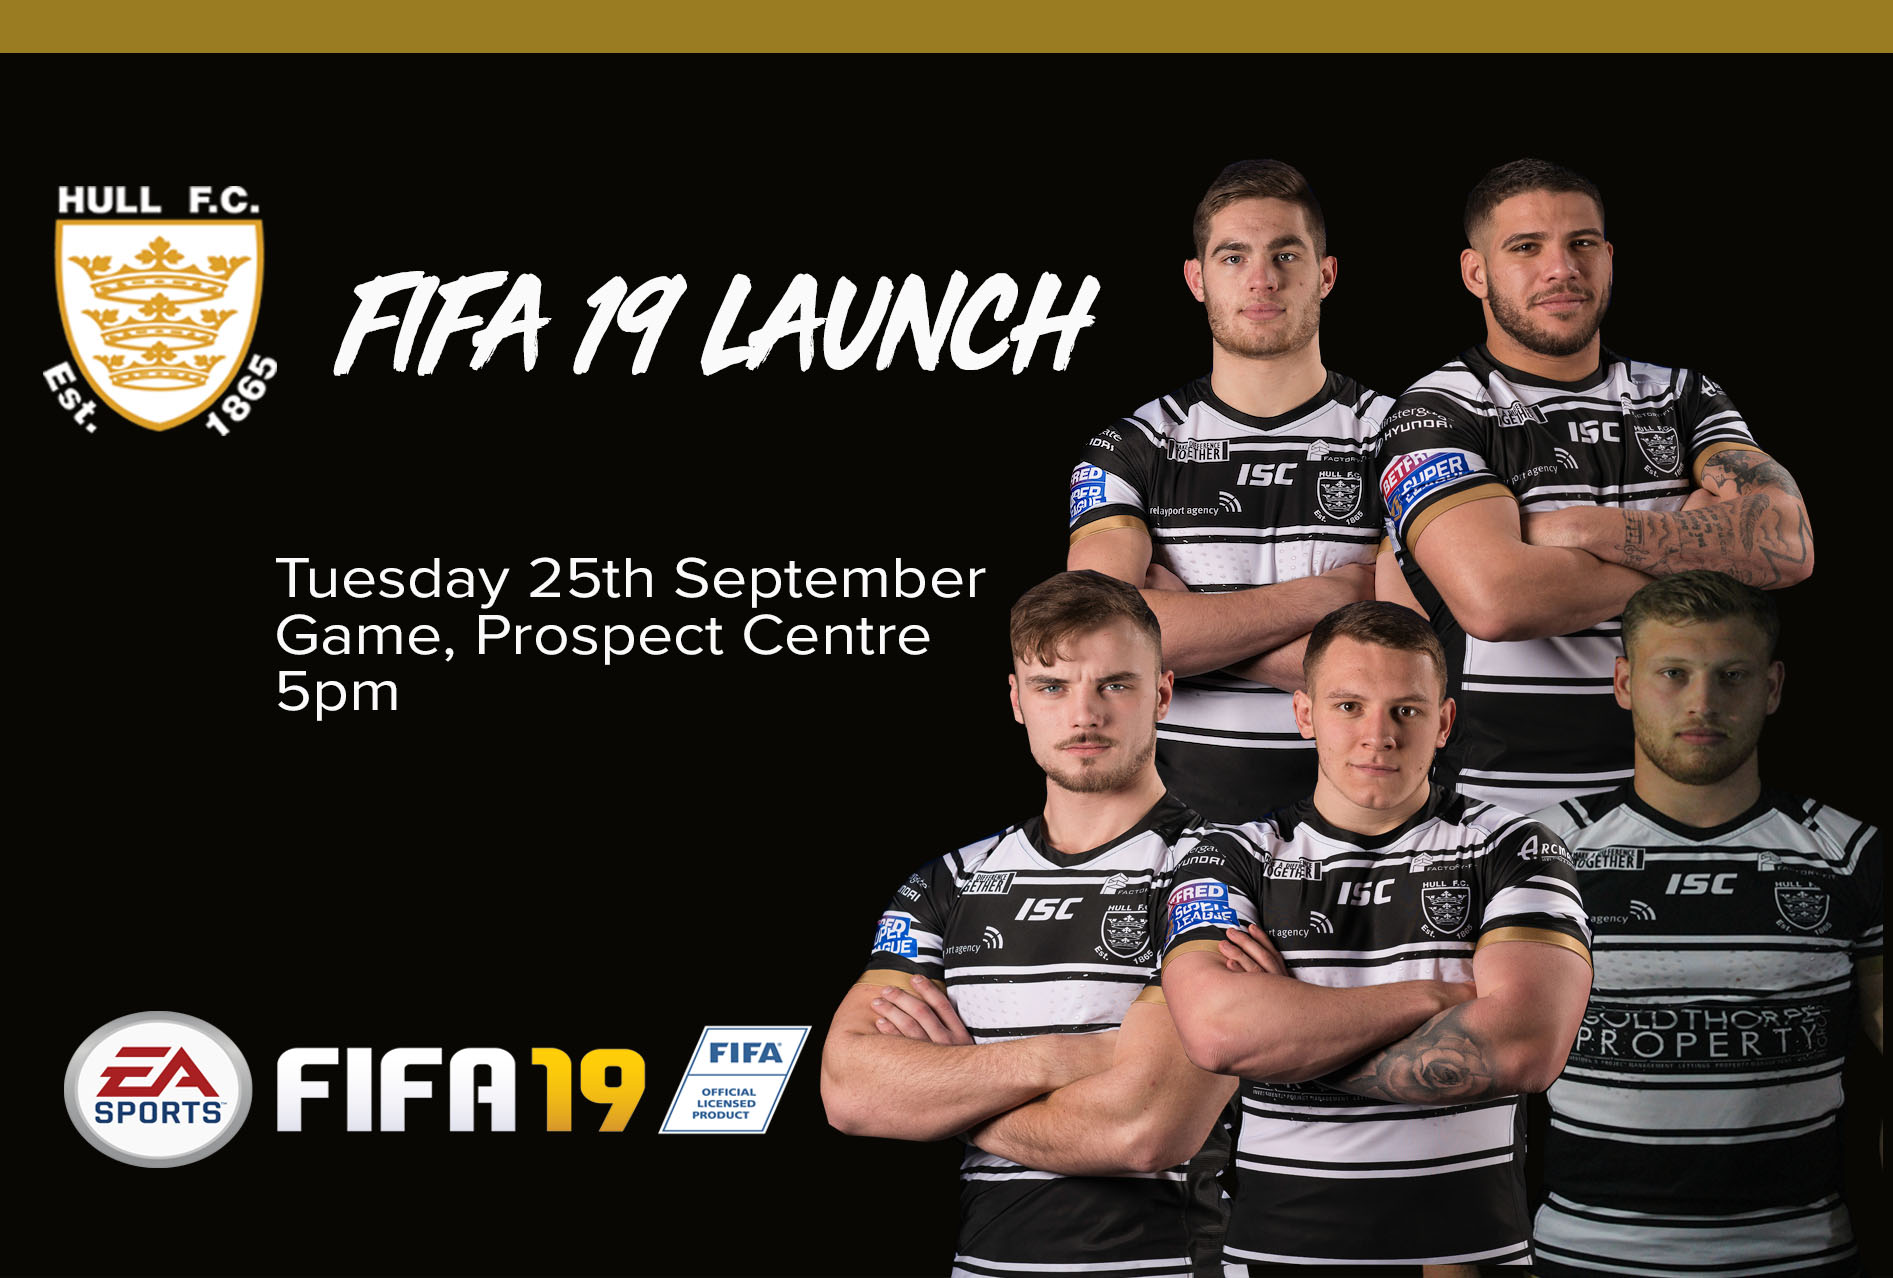 Players In Attendance at FIFA 19 Launch Tonight! | News | Hull FC